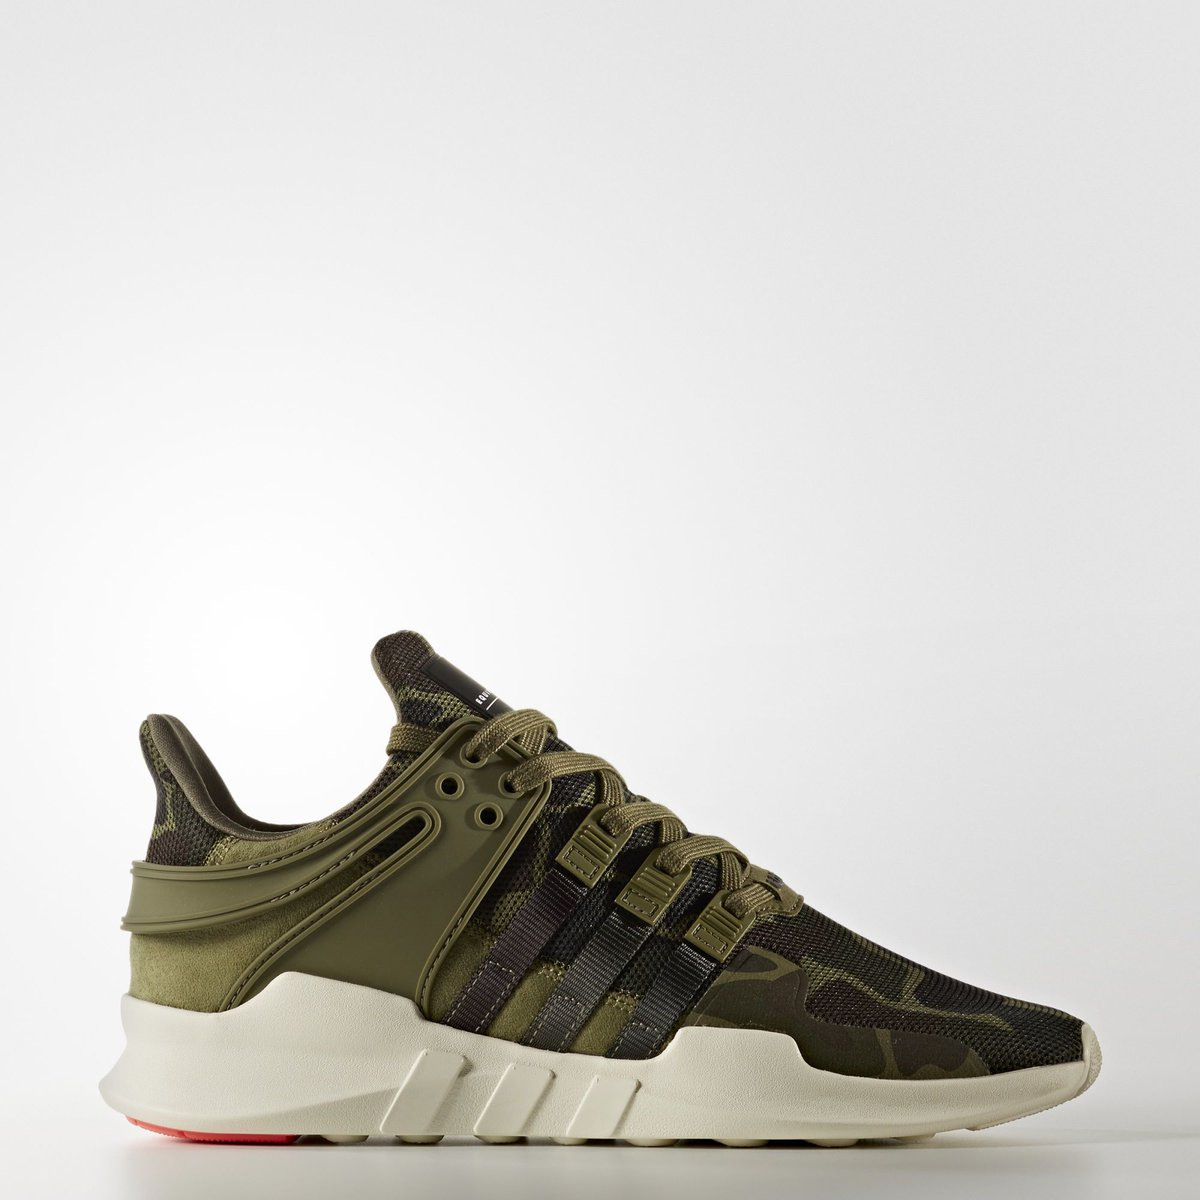 uk availability a5d46 e8c3c adidas alerts on Twitter: